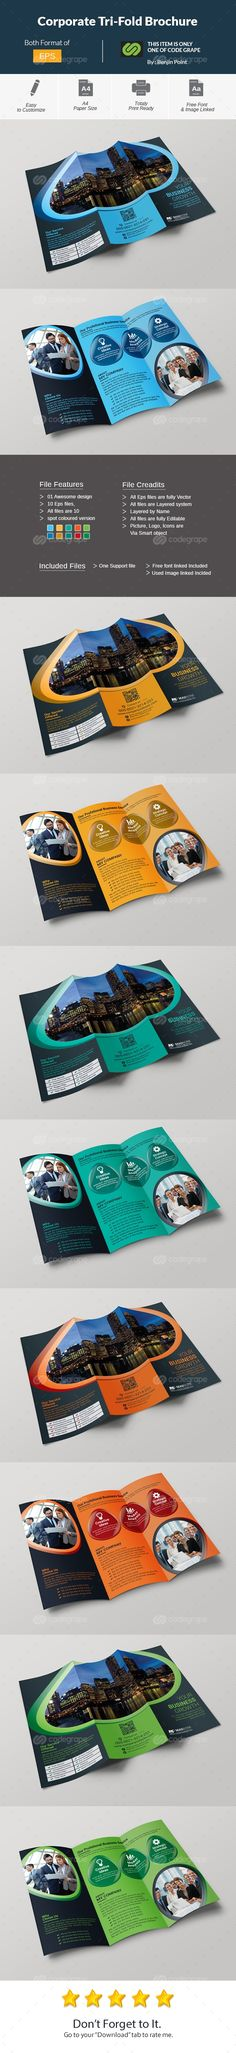 Corporate Tri-Fold Brochure on @codegrape. More Info: https://www.codegrape.com/item/corporate-tri-fold-brochure/10828